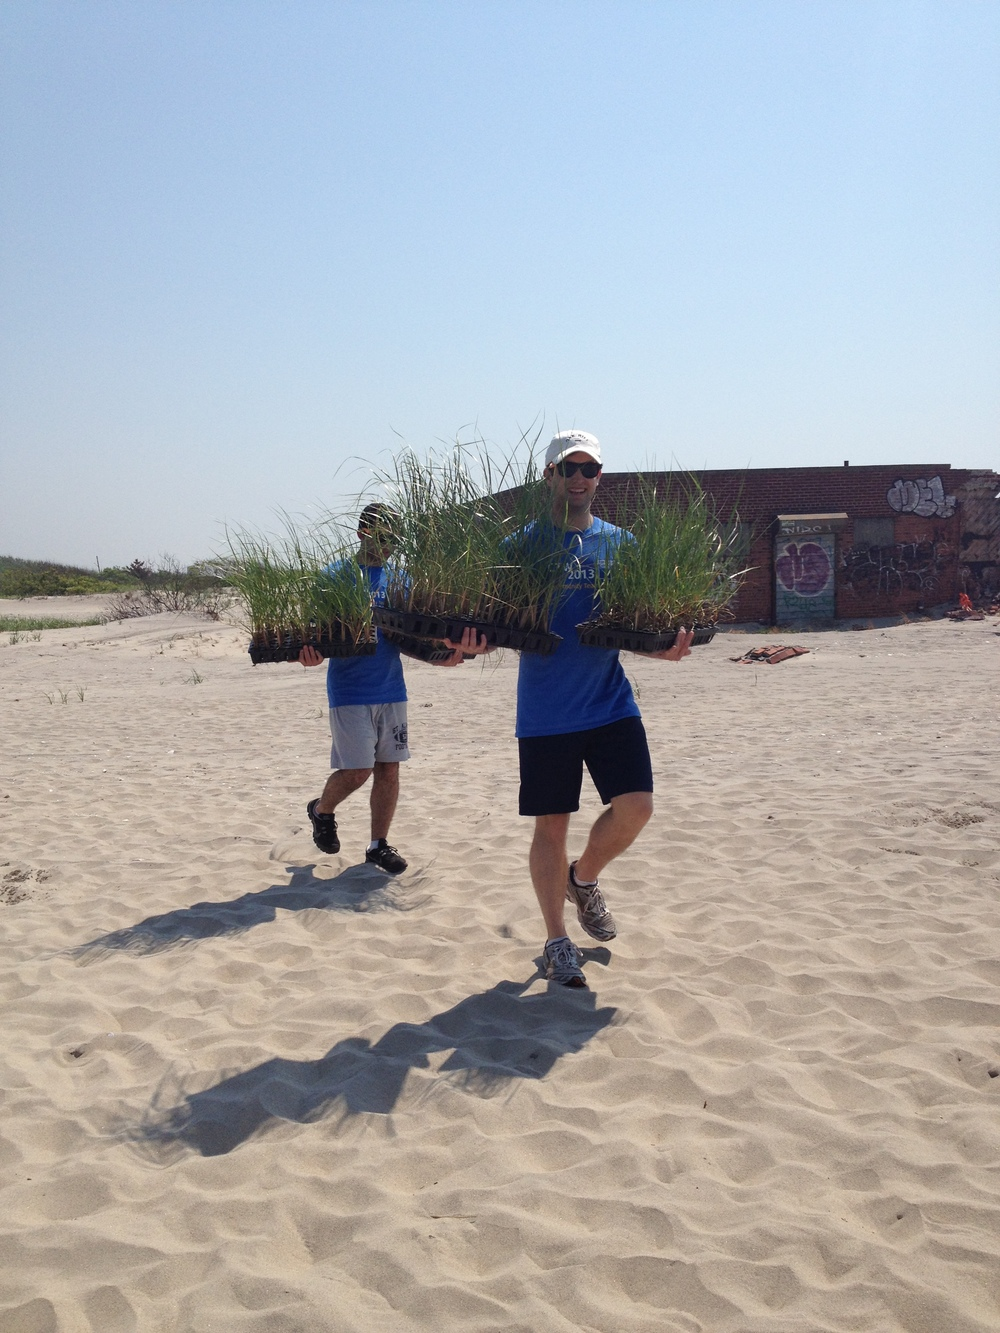 Volunteering at Rockaway Beach after hurricane Sandy